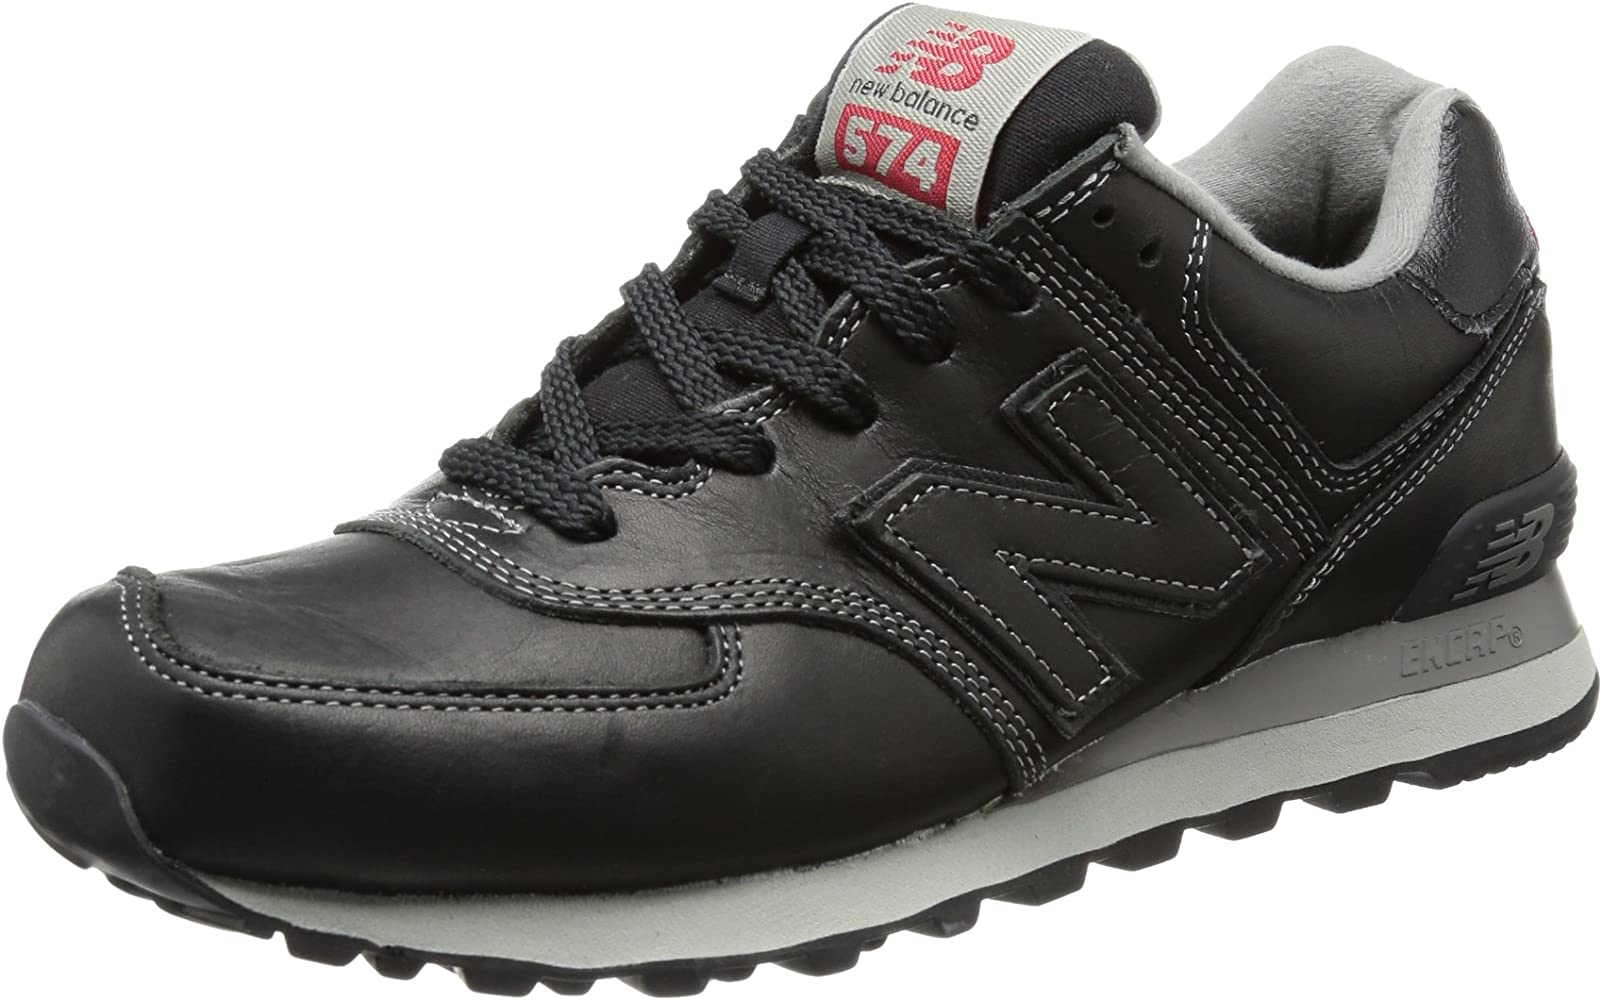 Sneakers Ml574 Herren Top D Low 1Tlu5KJFc3